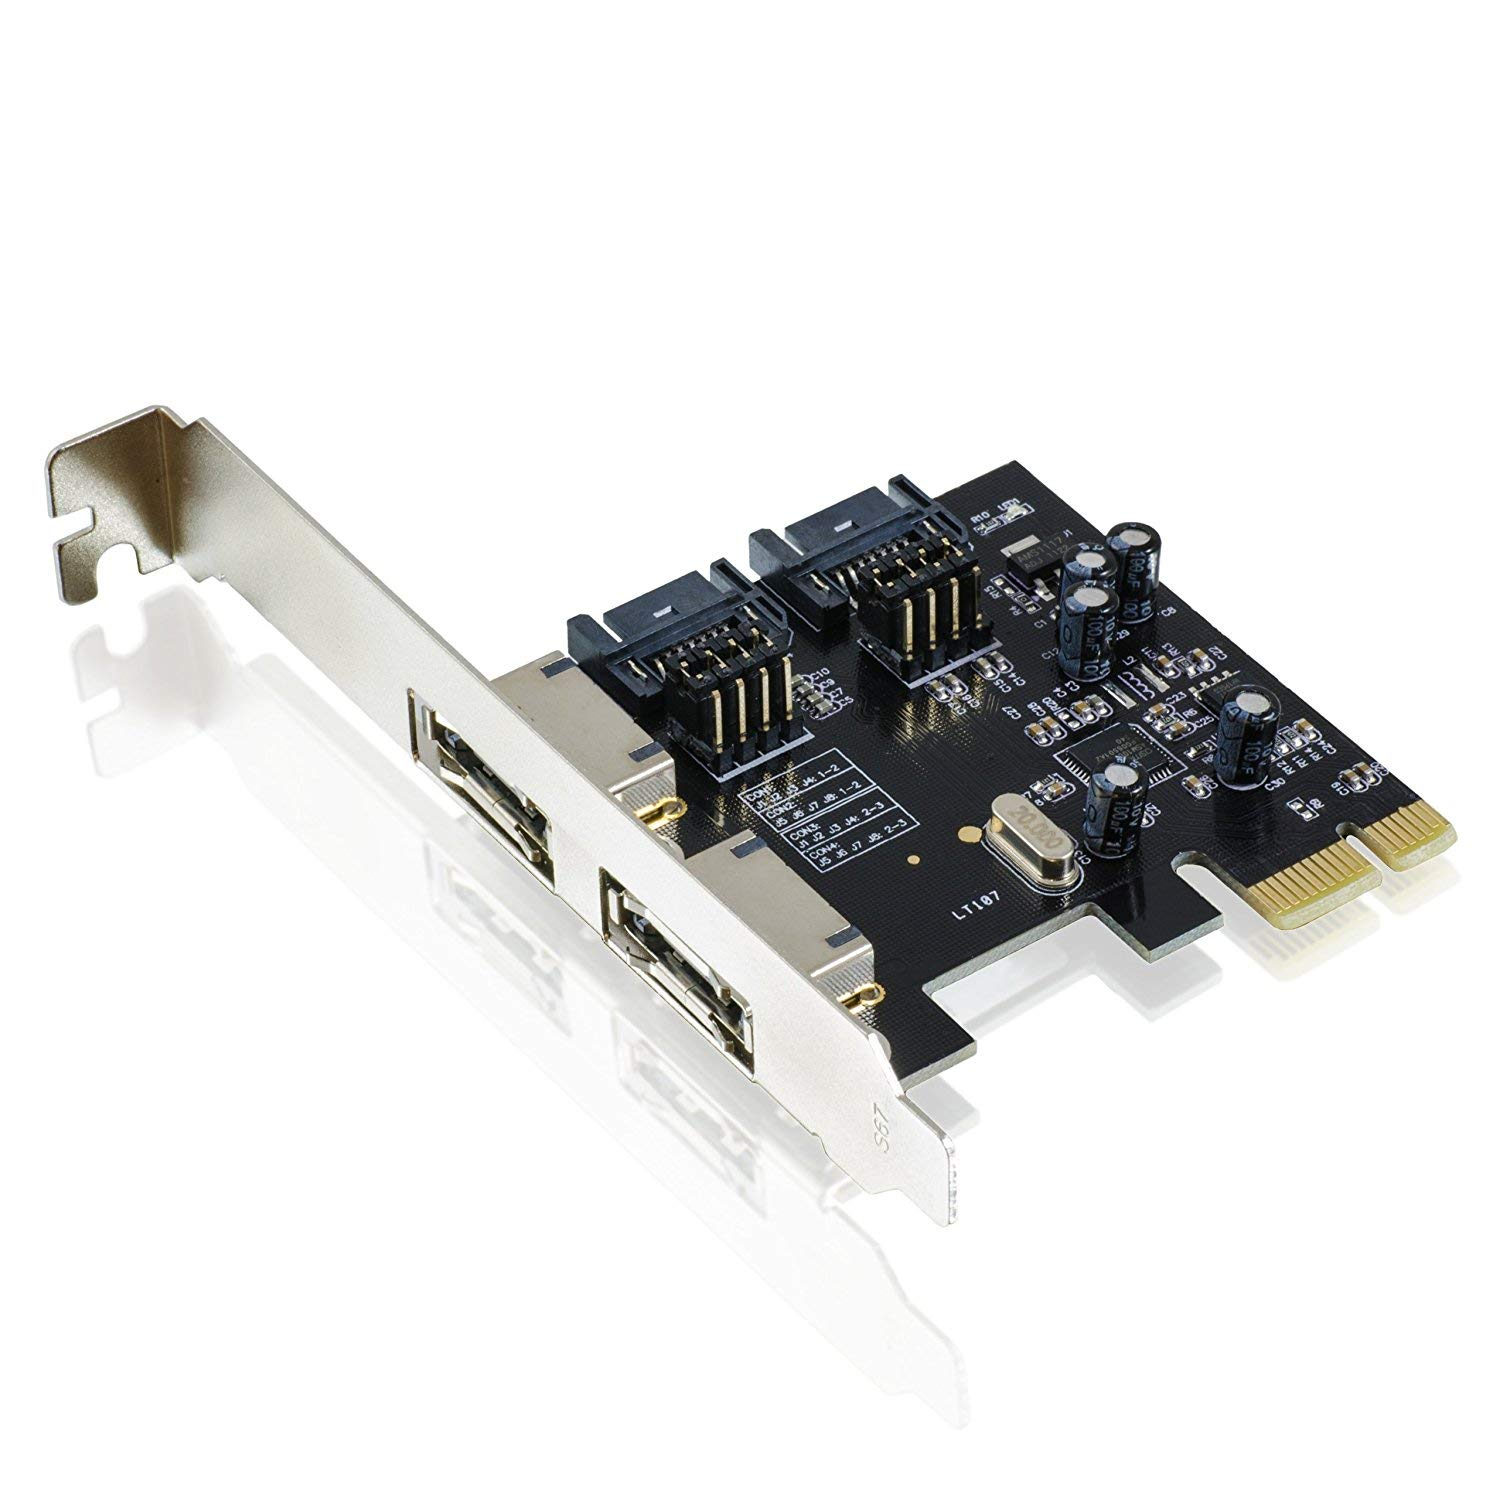 CSL PCI-Express (PCIe) 2.0 Controller card/interface card for SATA III/eSATA III (SSD+HDD drives) | 6Gbit/s | 2x internal SATA / 2x external eSATA | ASMEDIA